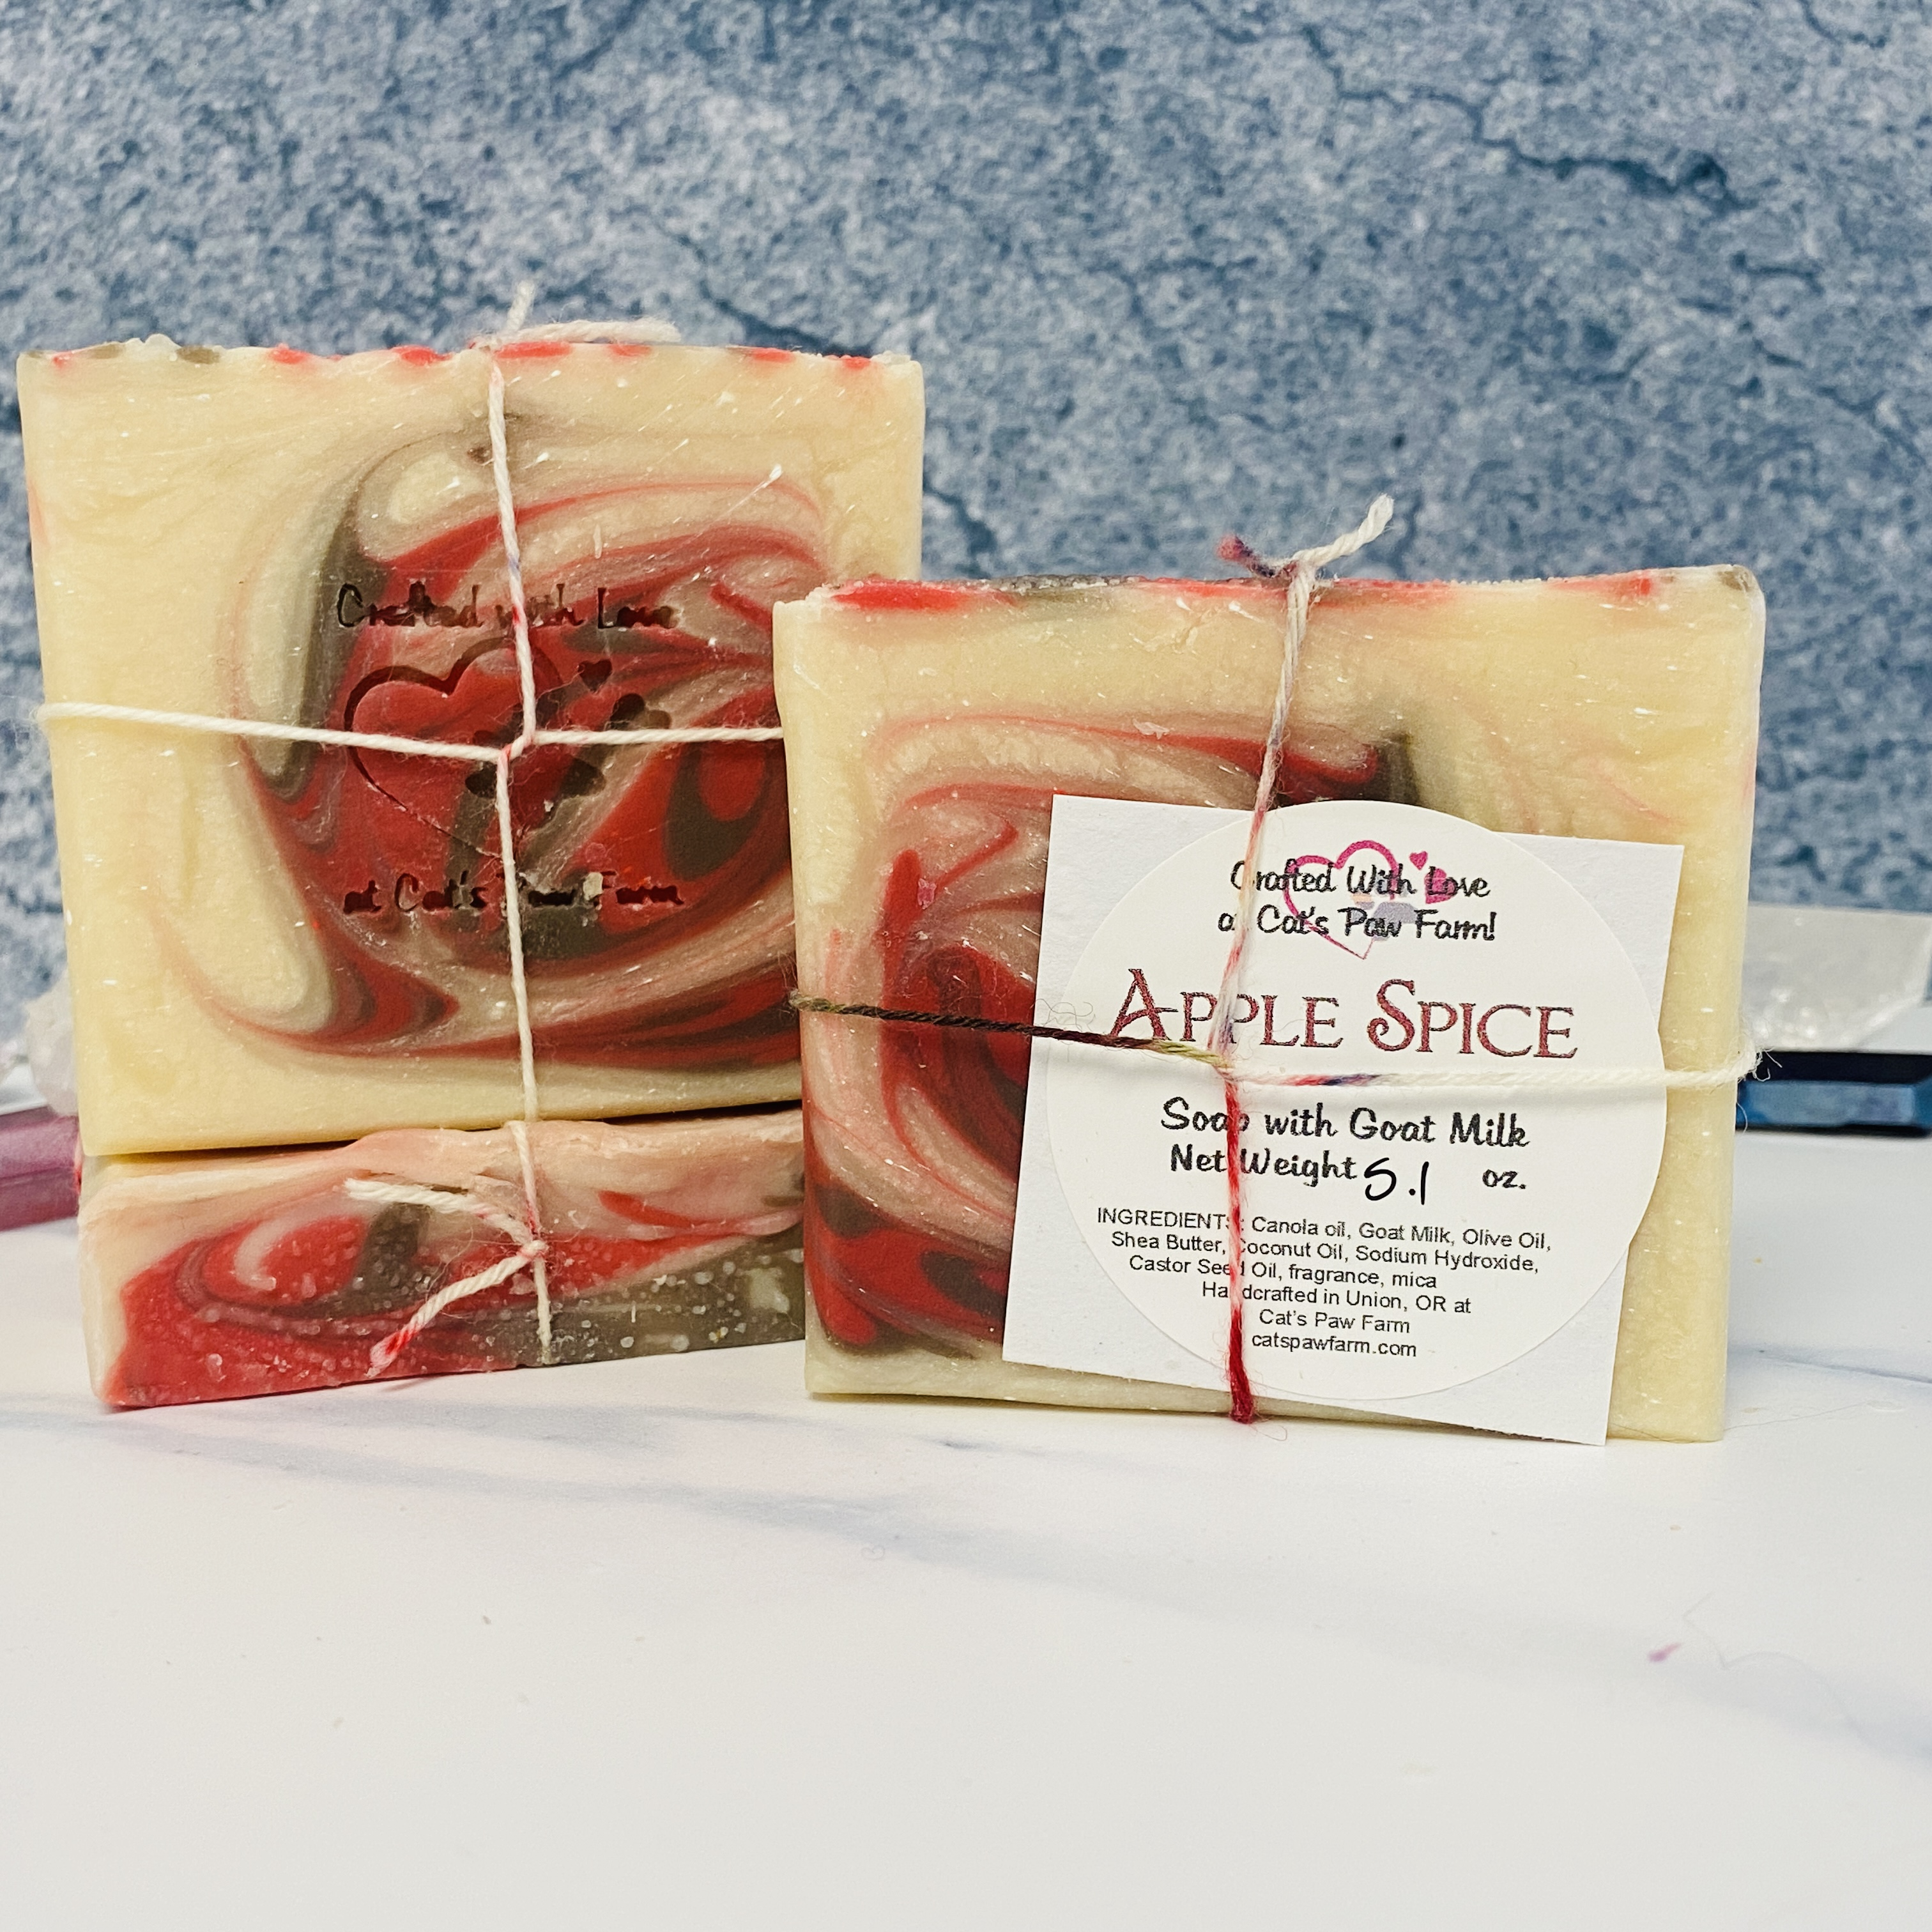 Apple Spice Scented Soap with Goat Milk